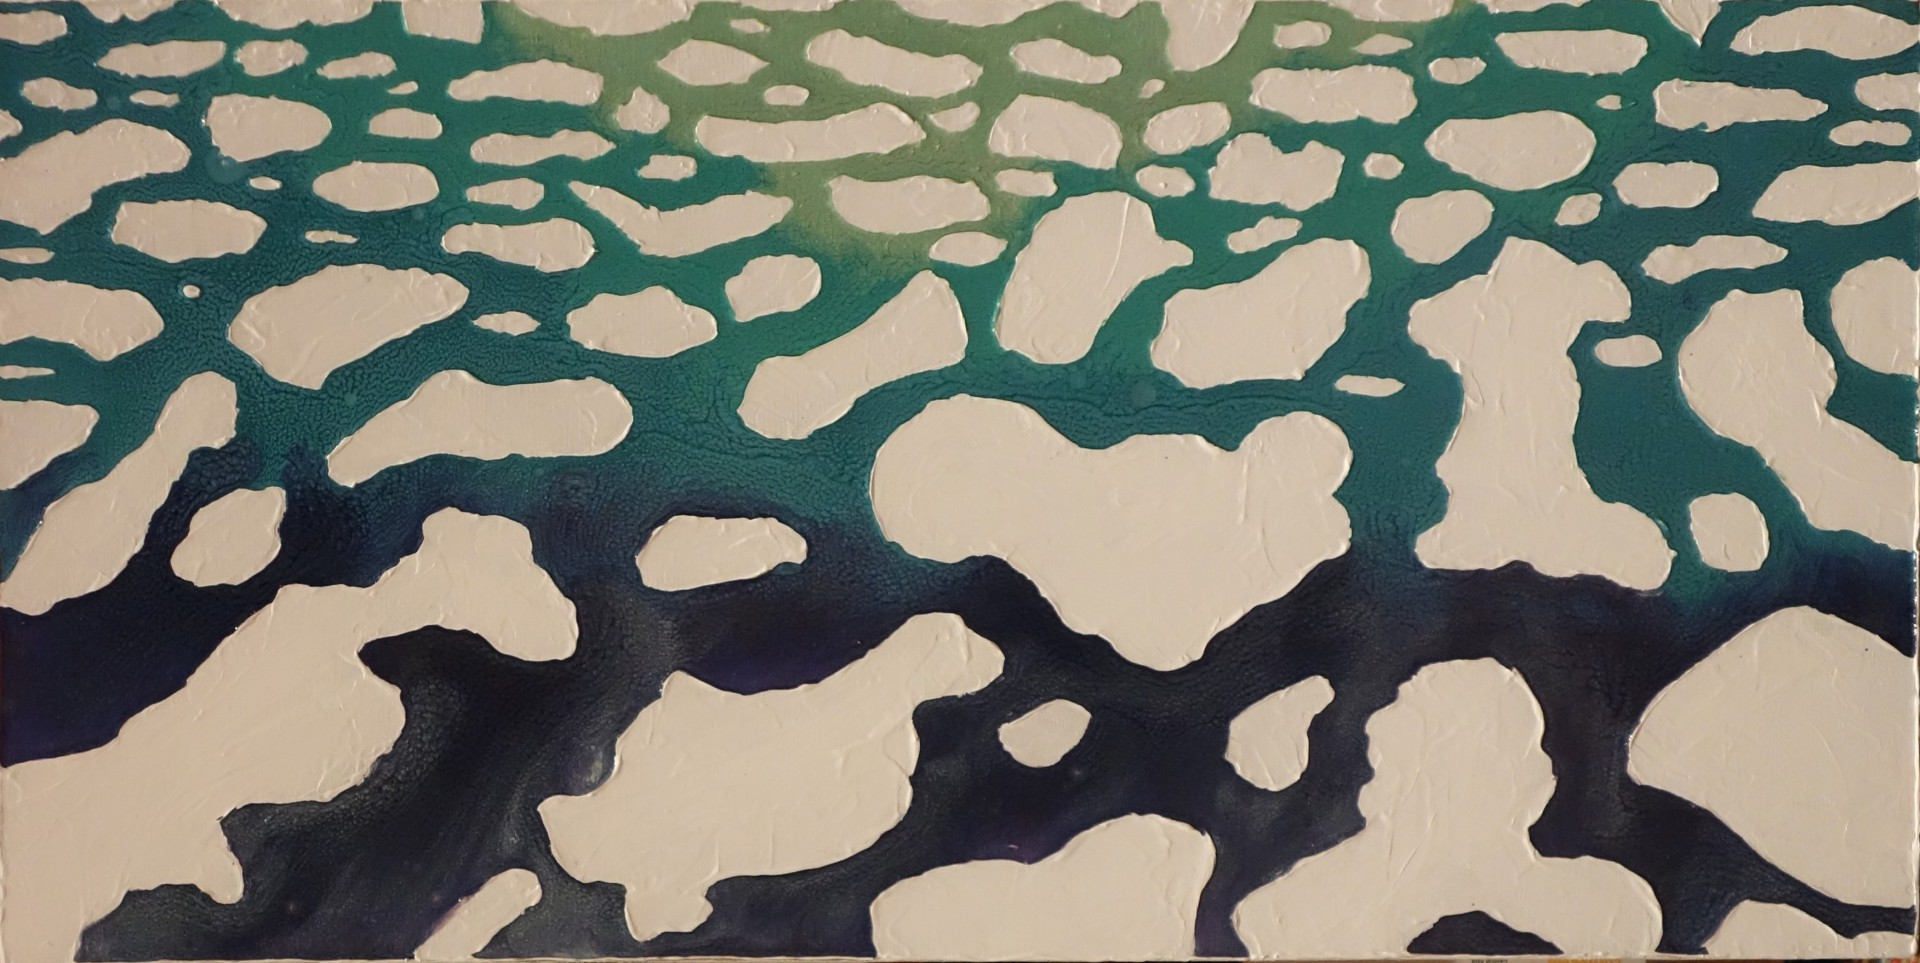 Ice Floe Isolation enamel and gesso on canvas painting by Sabrina Puppin